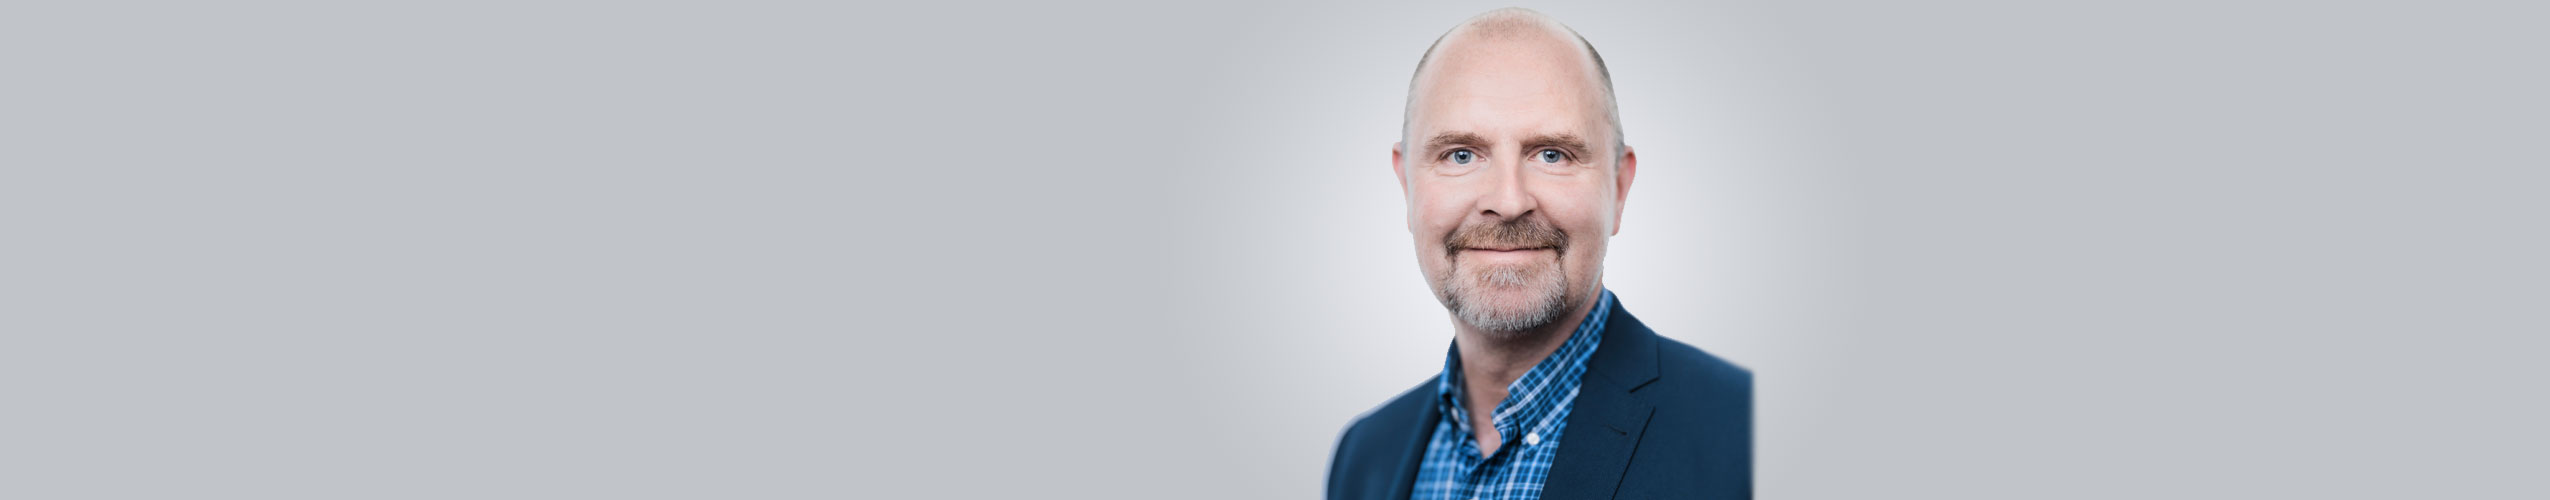 Håkan Nilhammar to lead new Customer Care department